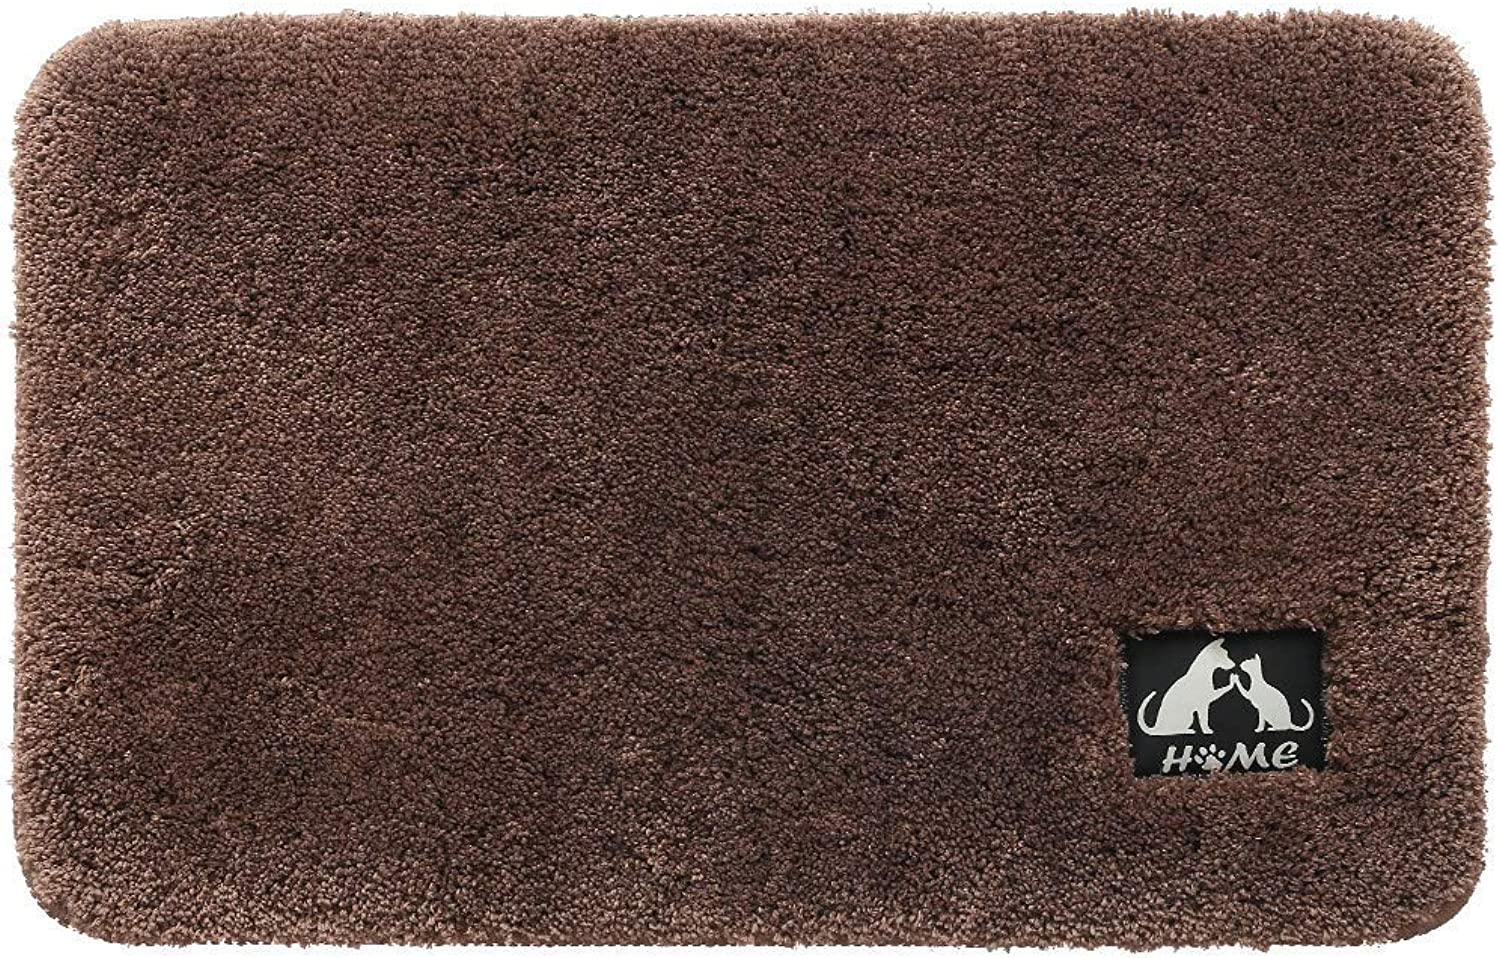 Welcome Mats Absorb Mud Mat Door Non Slip Backing Lower Profile Cotton and Microfiber Dirt Trapper Mat for Front Door Floor Entrance Clean Step Mat,Brown,80  120cm